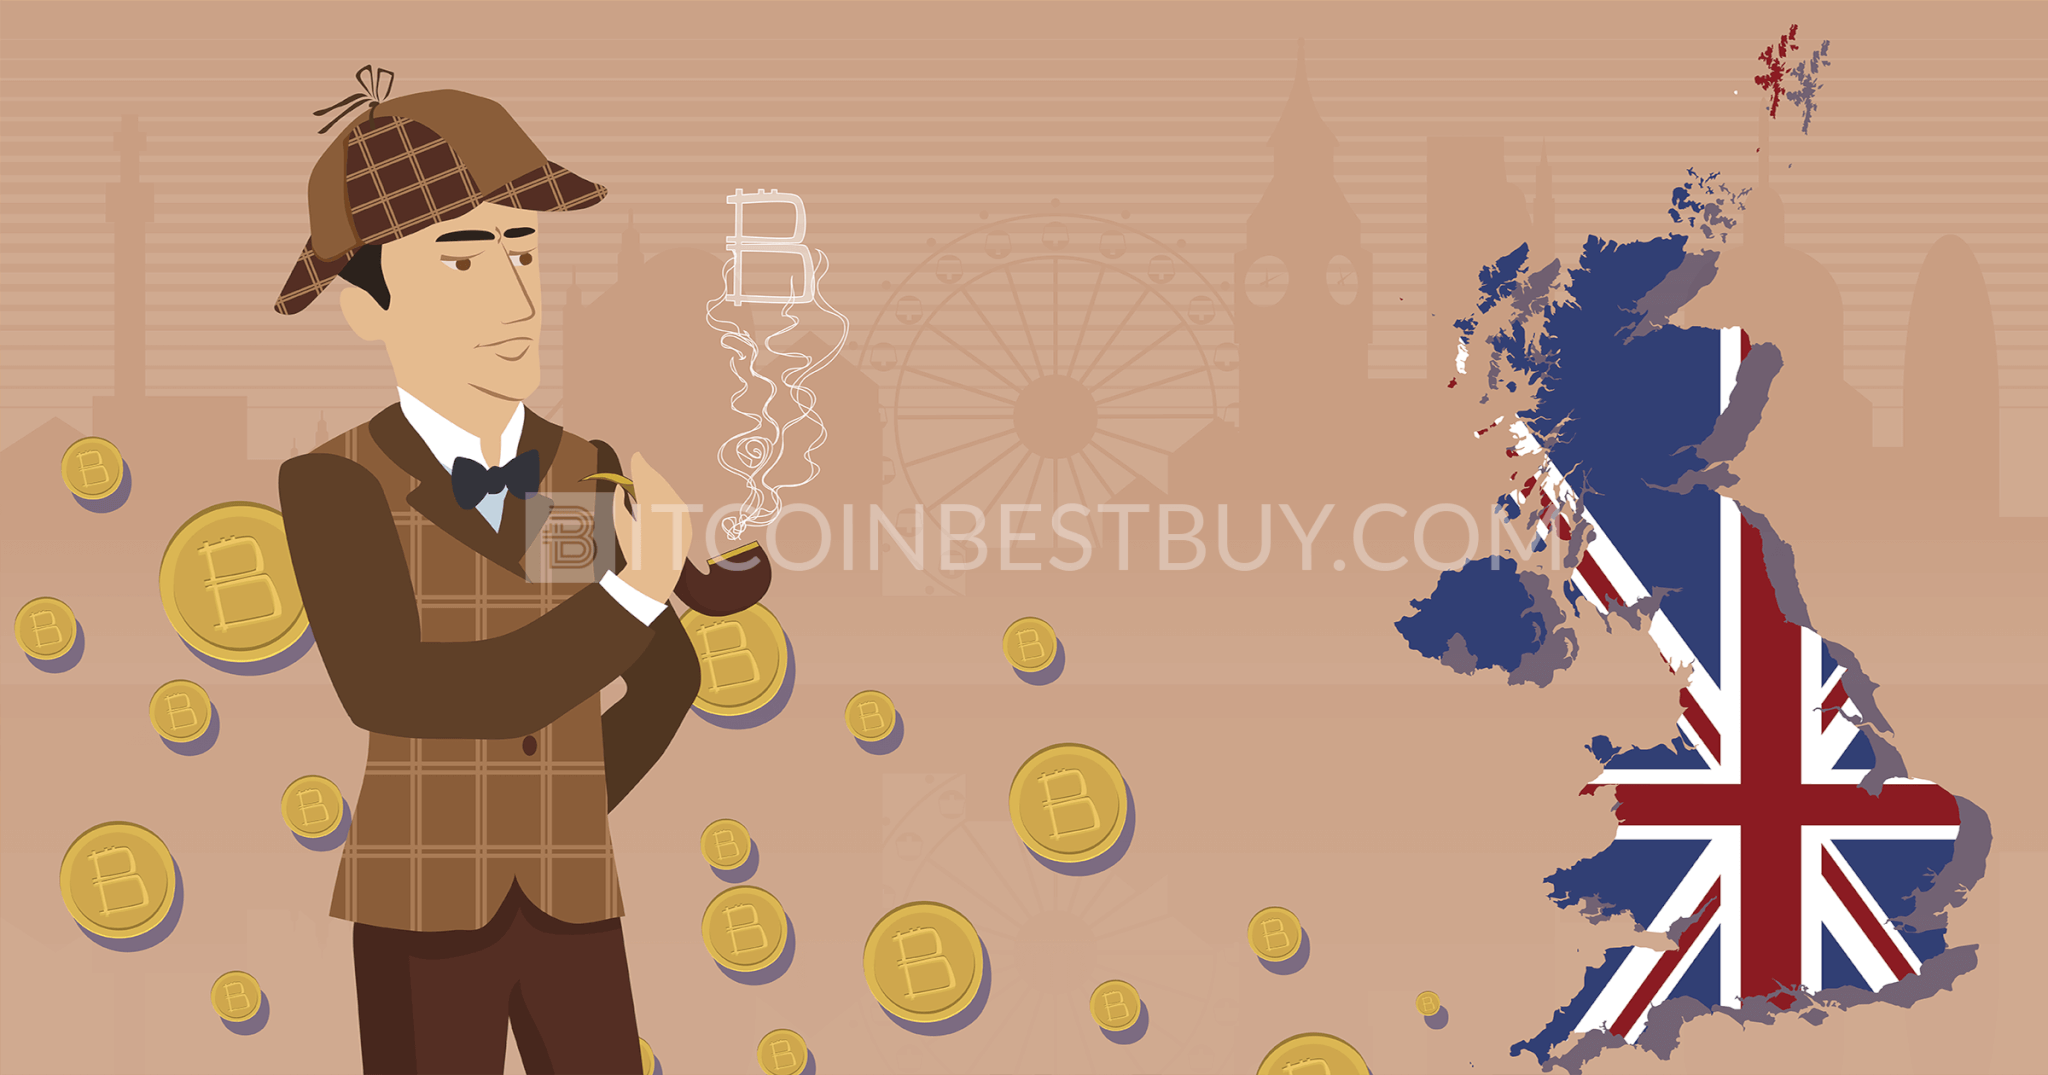 How to buy bitcoin in the uk cheapest and easiest ways to get btc this article will show you how to purchase bitcoins uk easy way while listing many different companies with accepted payment methods fees pros and cons ccuart